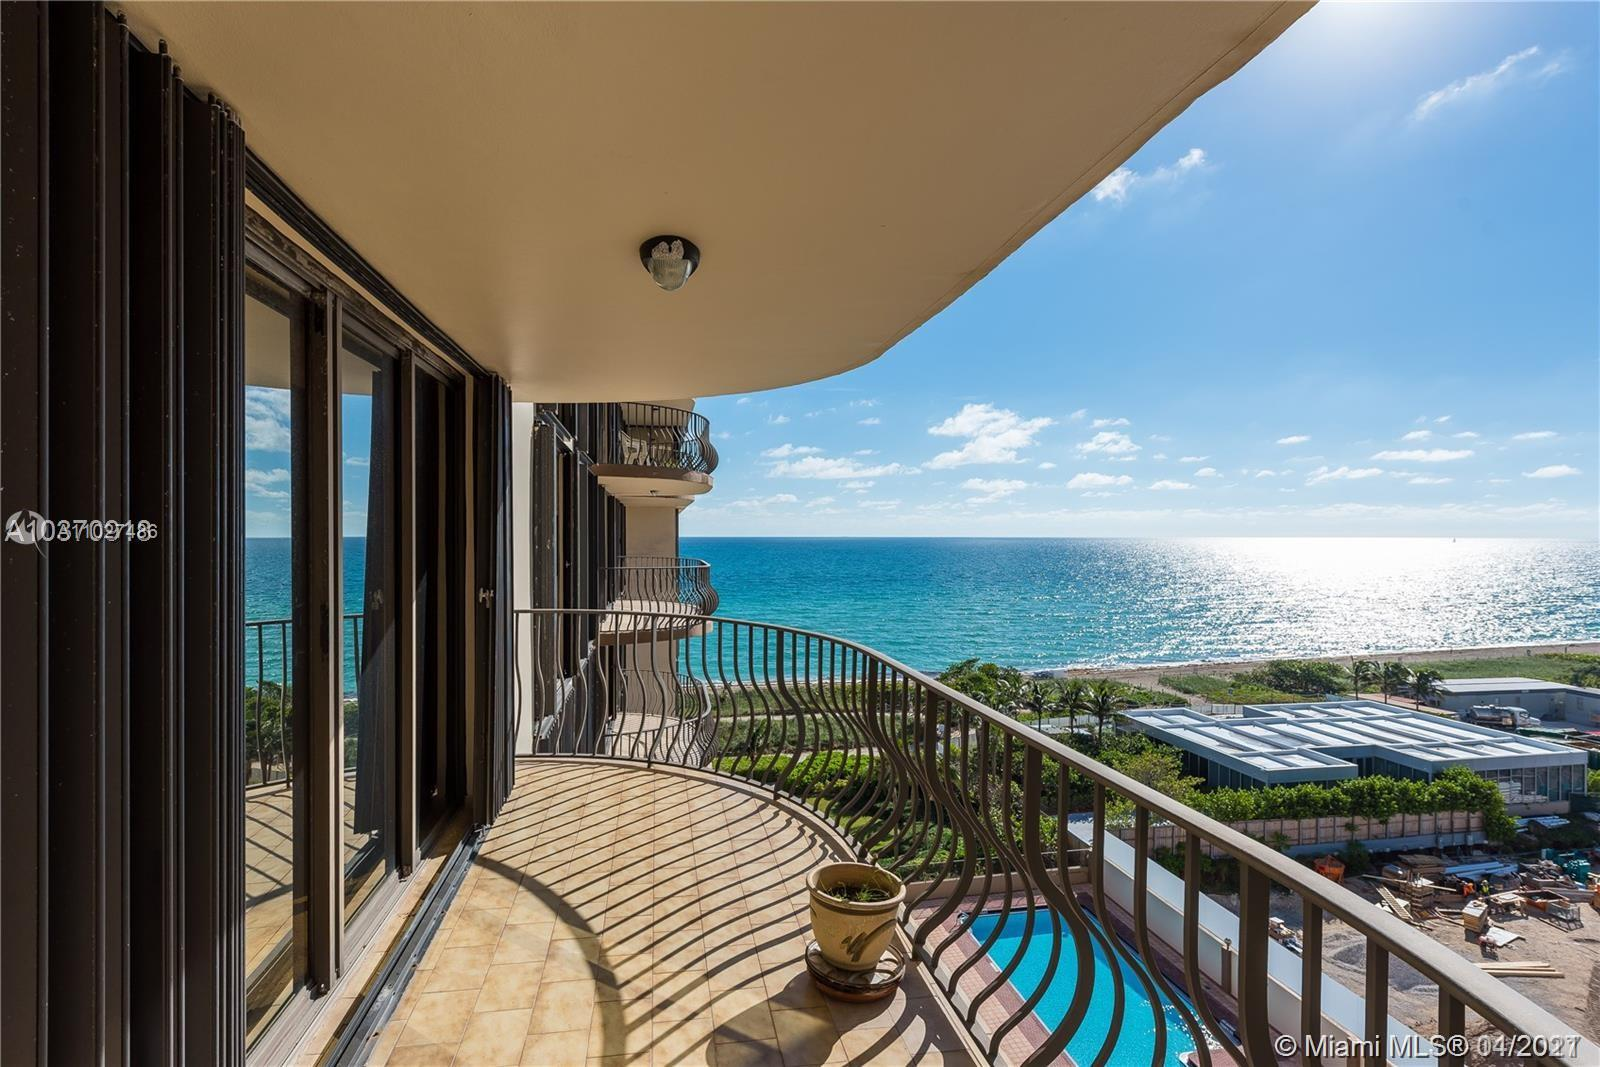 Breathtaking ocean views offered from this spacious 3 bedroom / 2 bath  unit. This spacious residence has hardwood floors, walk-in closet and full size washer/dryer in unit . Large kitchen with eat in breakfast table. Unit is recently remodeled with very spacious  walk in closets. Building is steps to world renowned Bal Harbour shops, restaurants,  and amenities include: BBQ area, Sauna , Gym, Party room with billiard table and 24/7 security and front desk. Hi speed WIFI and cable included in rent. Residents have access to tennis courts and community center. Easy to see call listing. Unit can not be rented for the first two years . Unit is rented till july 30,2021. Showing Monday through Friday. Building has a special assessment in place for 180 months just approved .